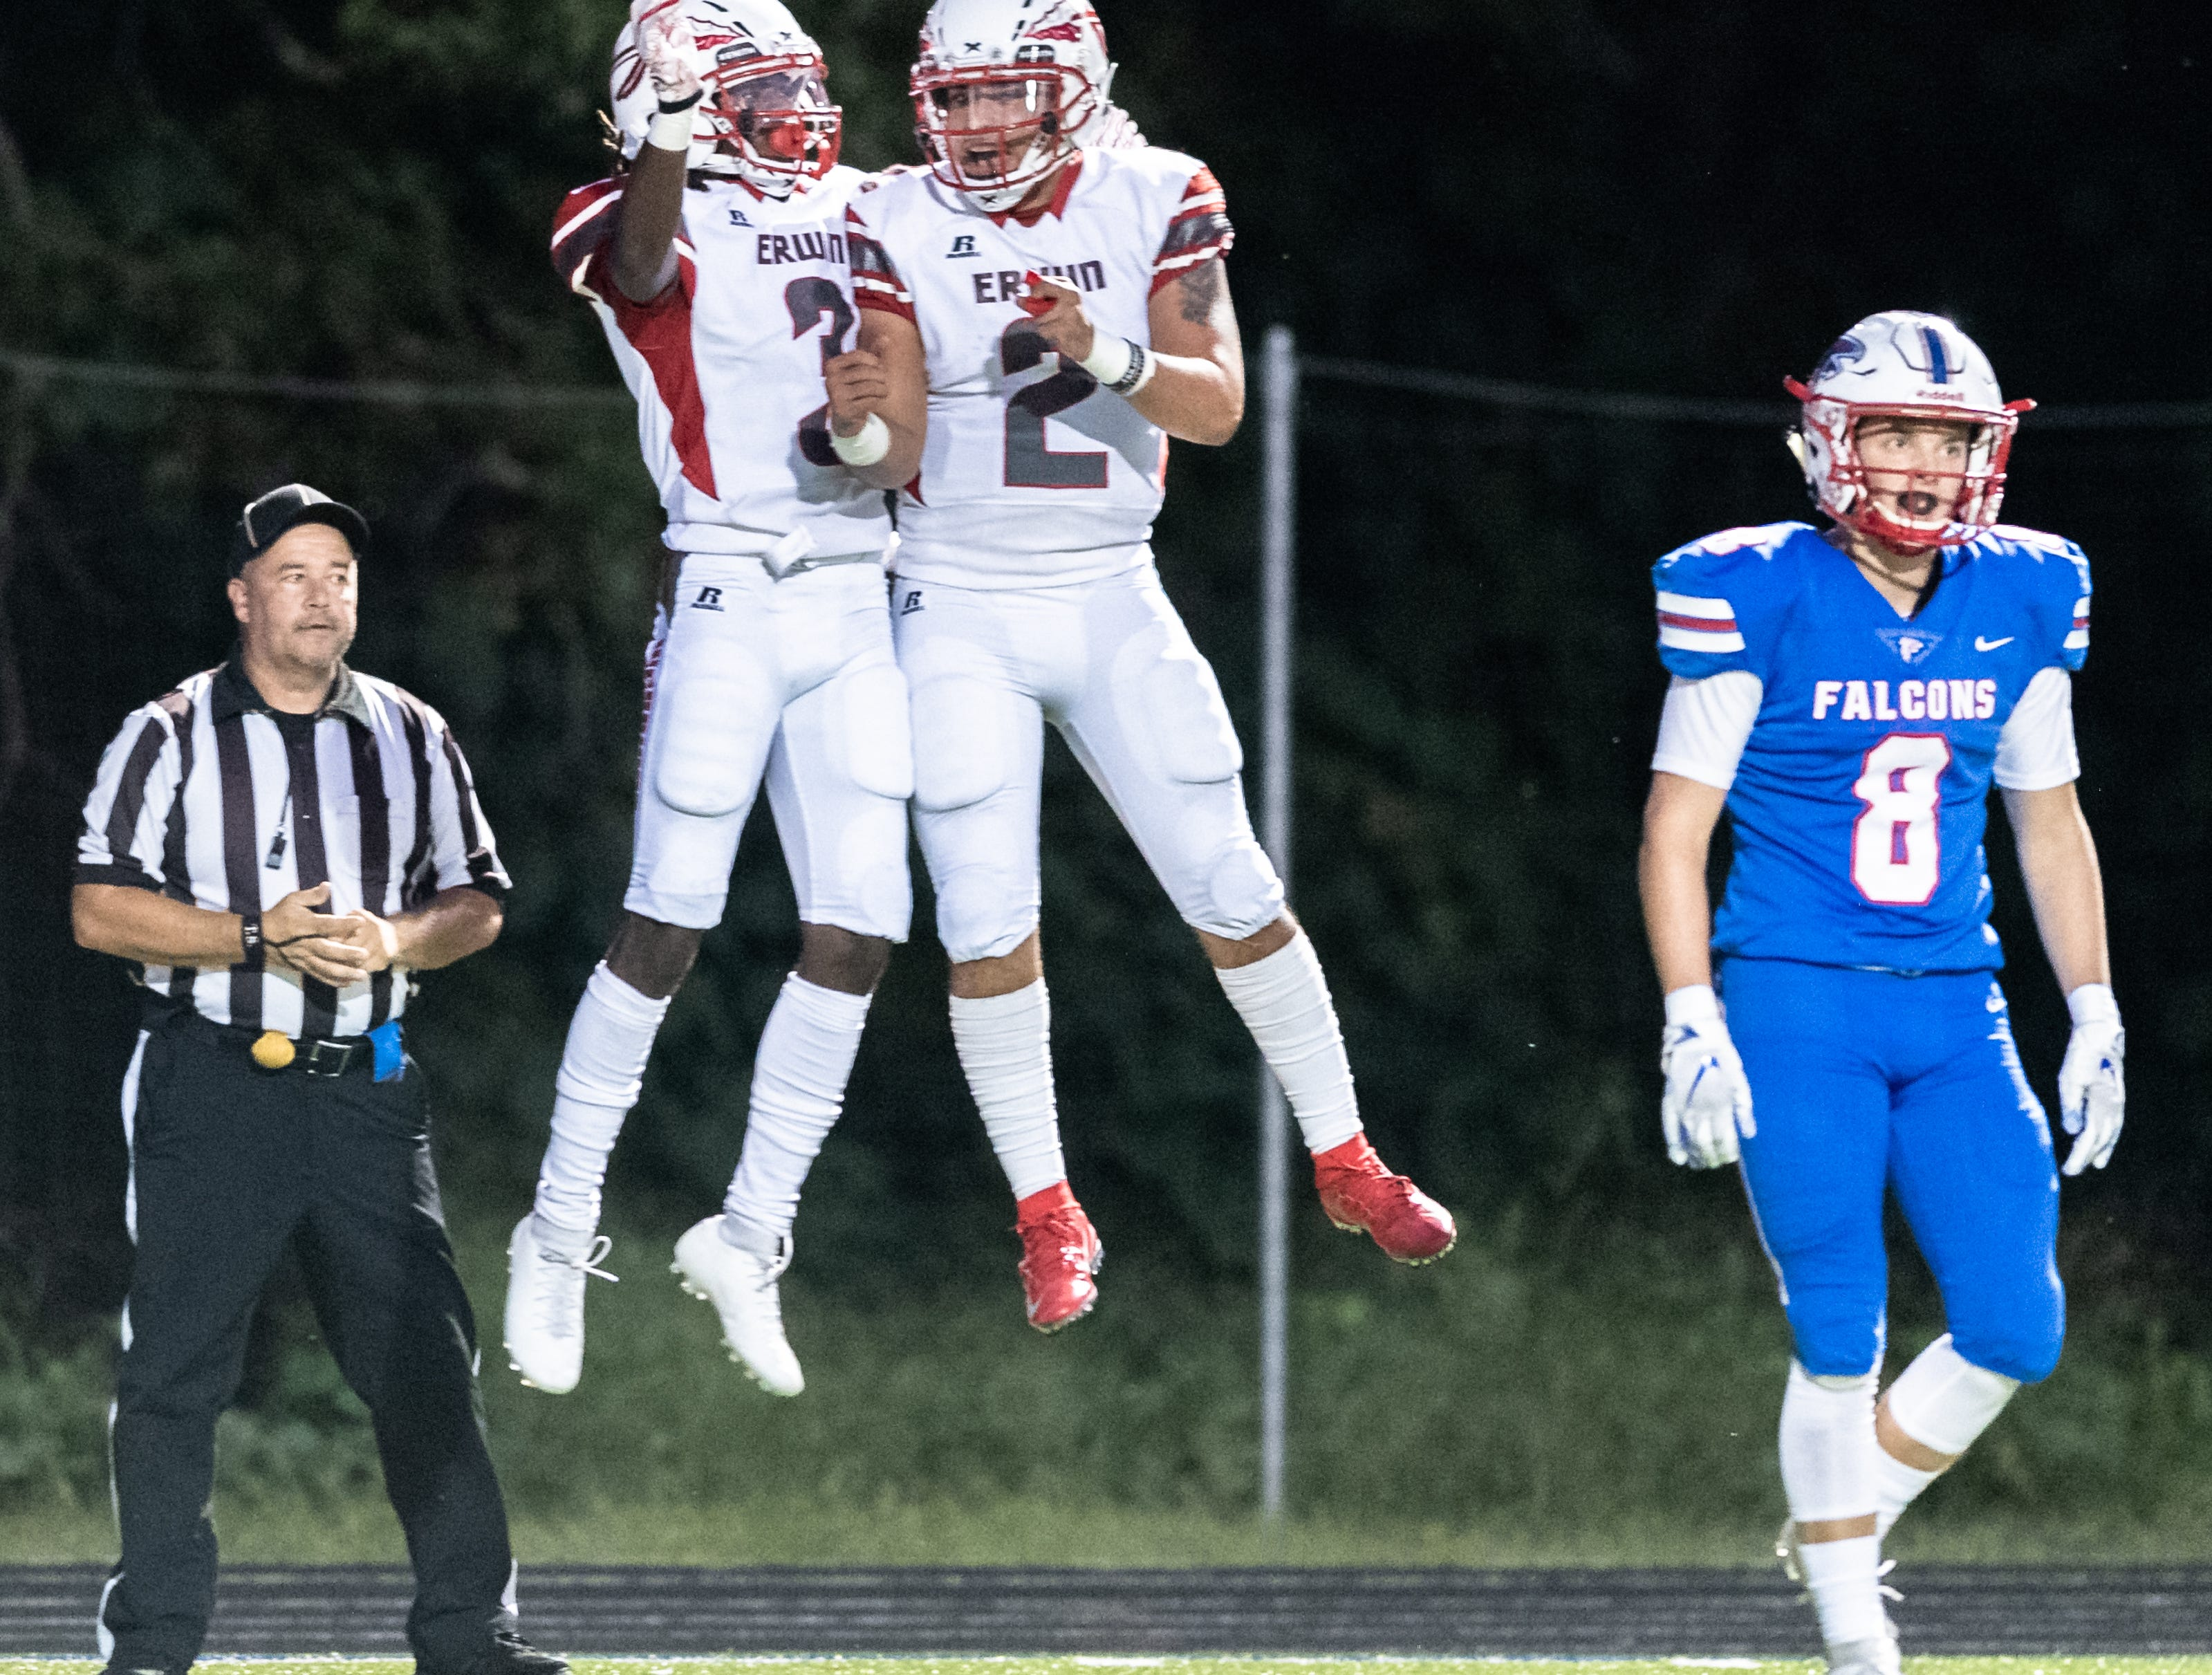 Erwin's Simeon Thompson and Kendrick Weaver celebrate Thompson's touchdown during their game at West Henderson Sept. 28, 2018.